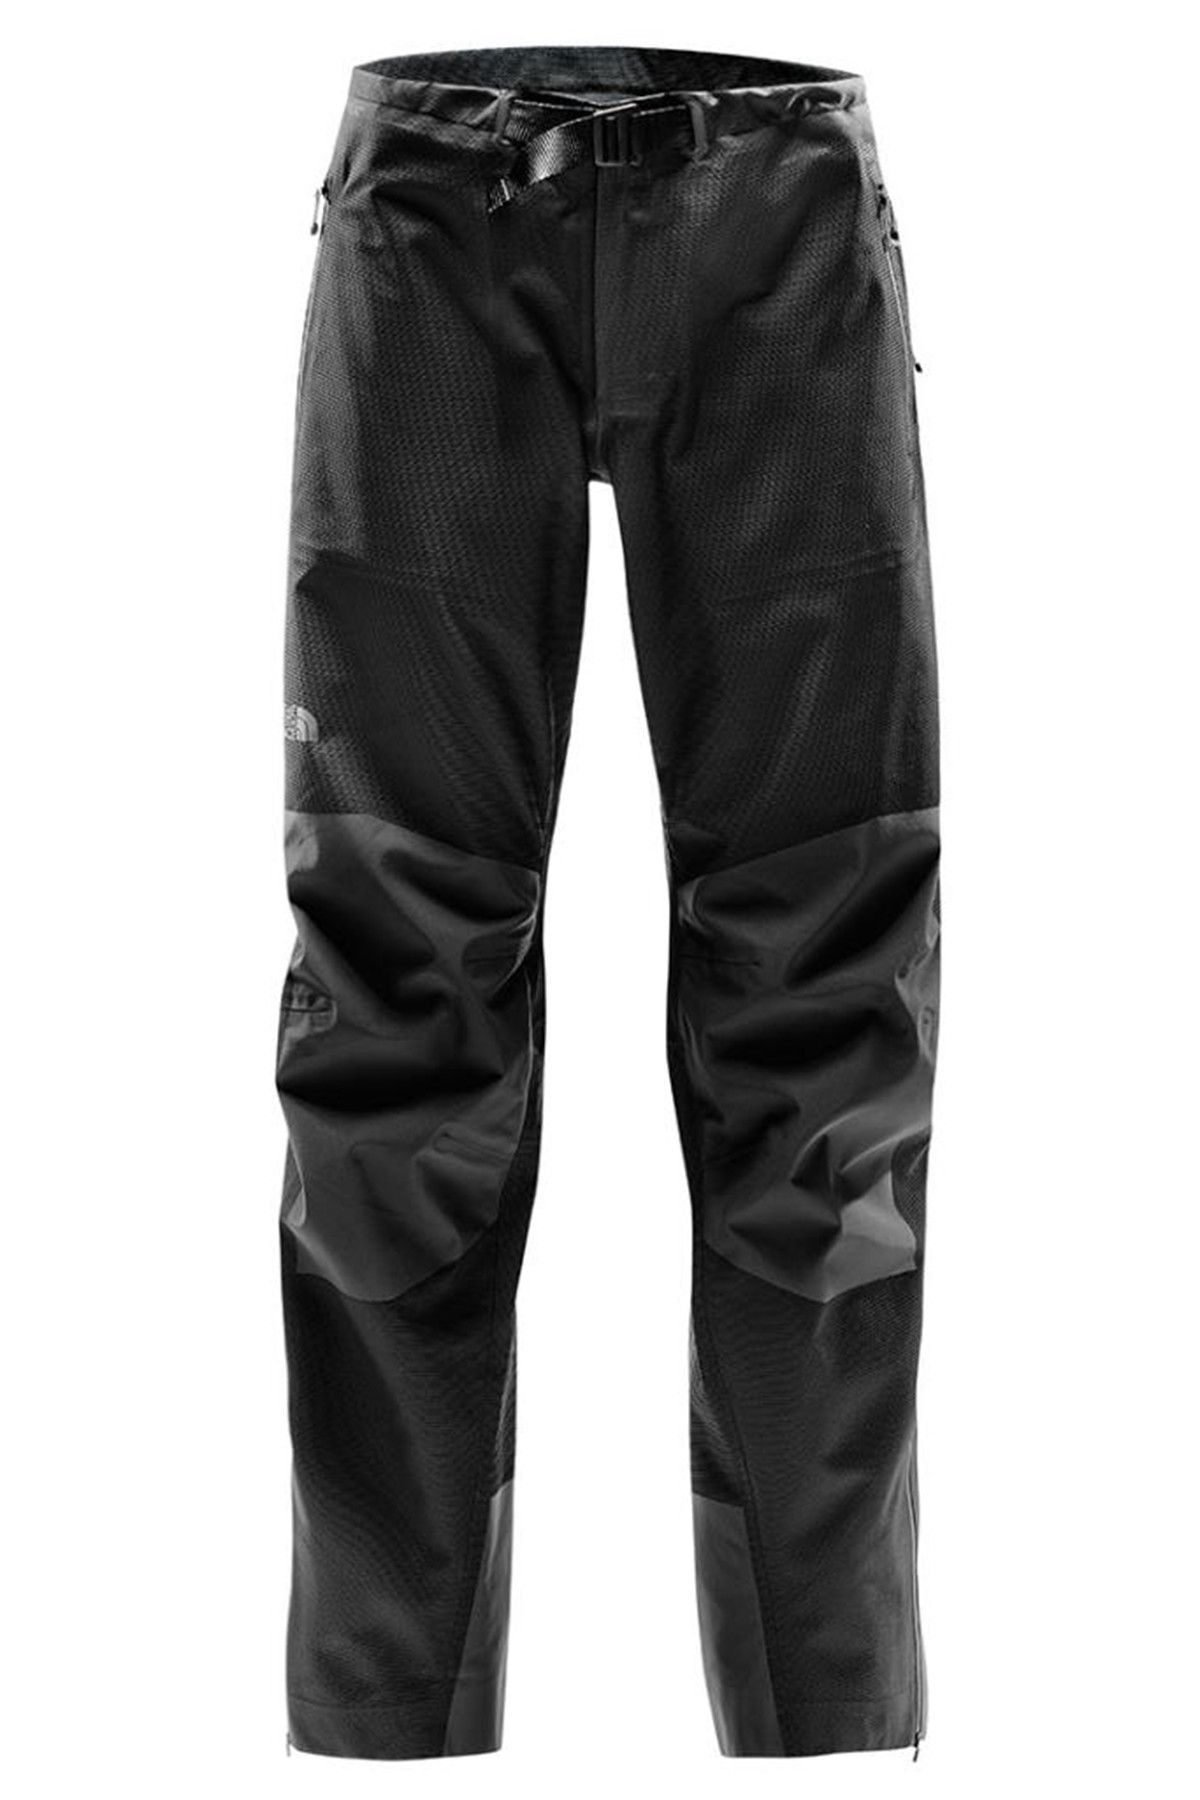 The North Face The North Face – W Summit L5 Shell Pant- Kadın Pantolon – 1413.0 TL